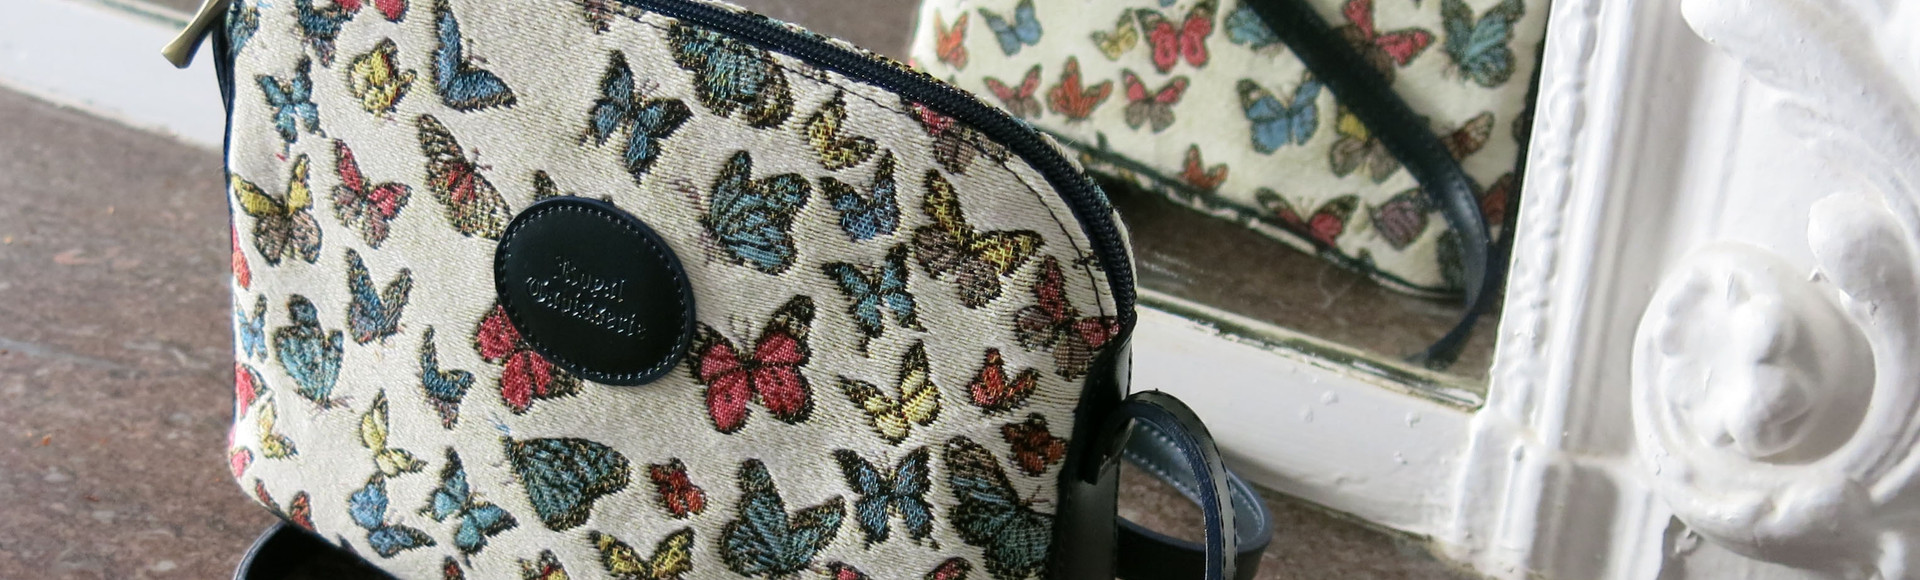 Royal Tapisserie made in France tapestry handbag french